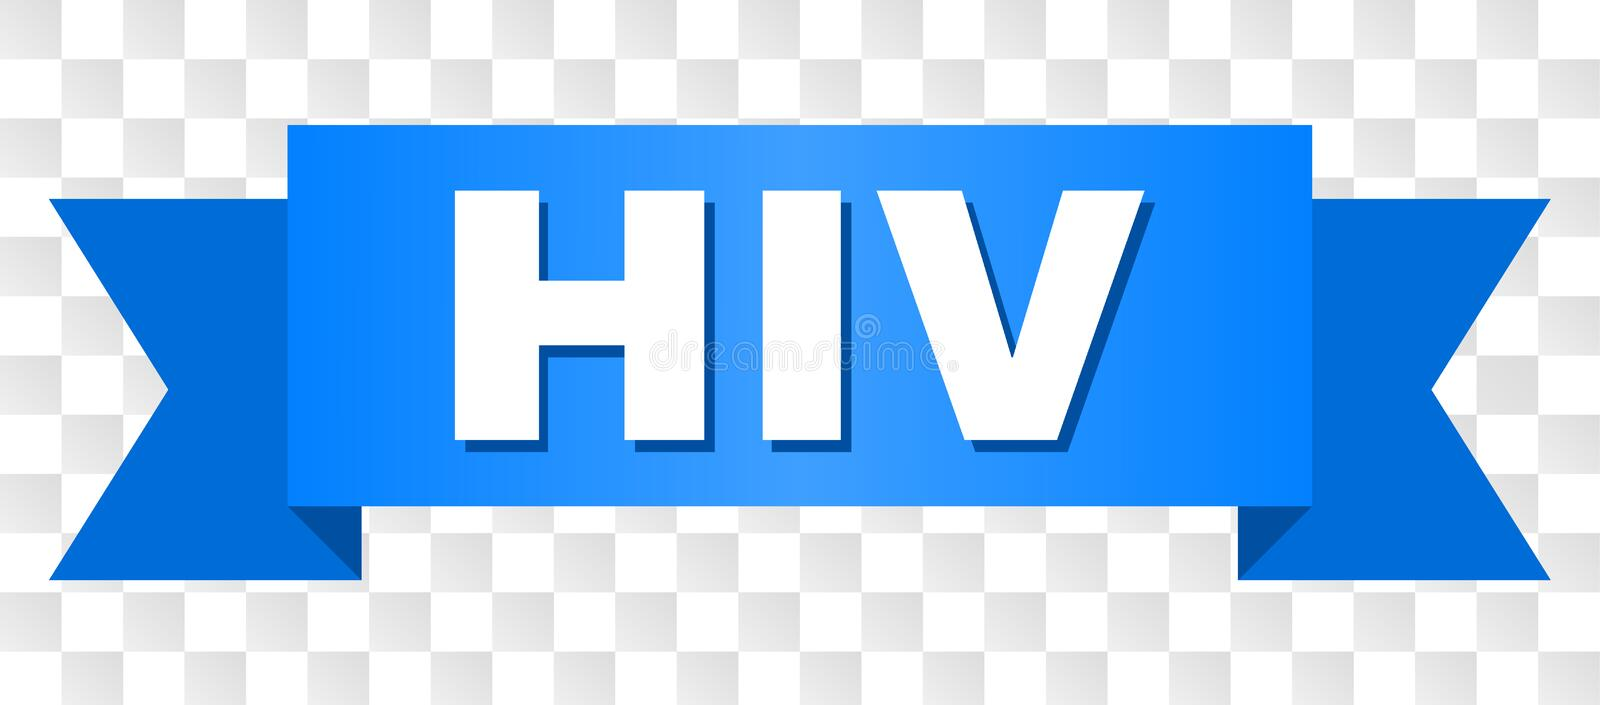 Blue Stripe with HIV Text. HIV text on a ribbon. Designed with white title and blue stripe. Vector banner with HIV tag on a transparent background stock illustration